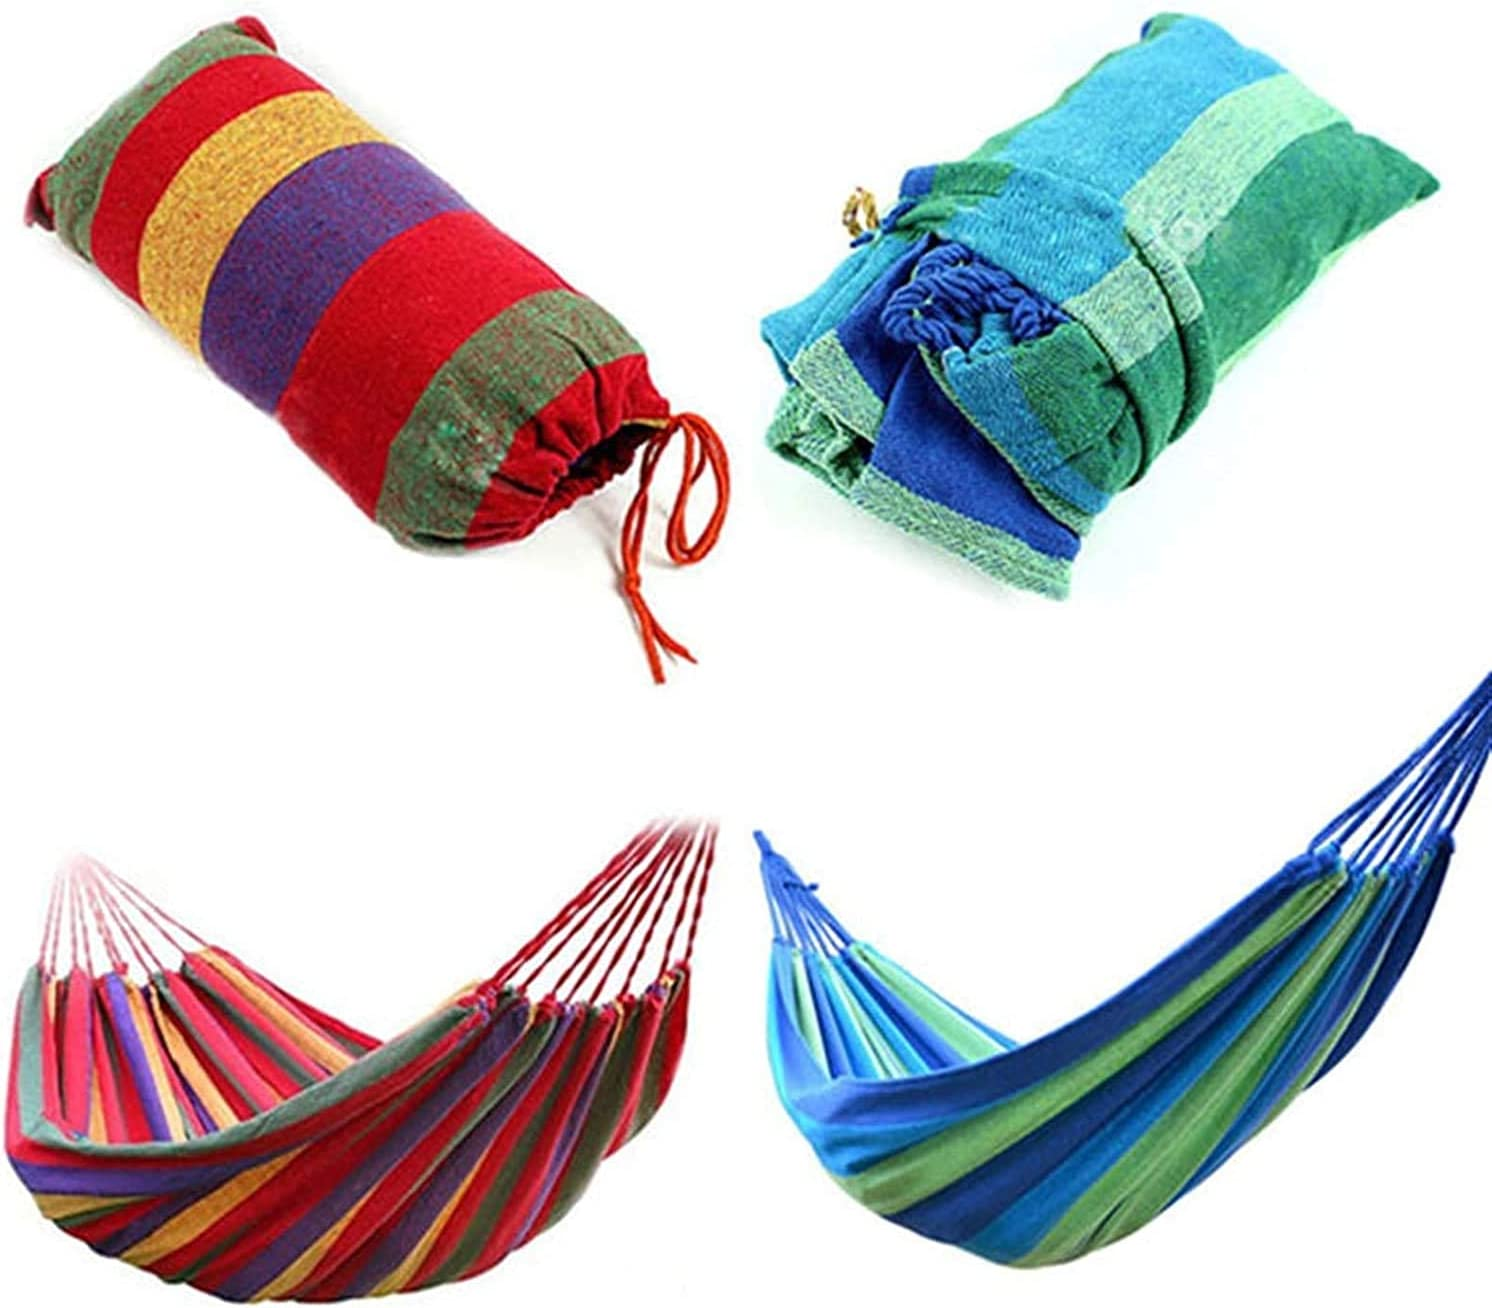 RVTYR 3 Sizes Camping Gear Popular brand Hammock Outdoor Hanging Max 41% OFF Leisure B Bed